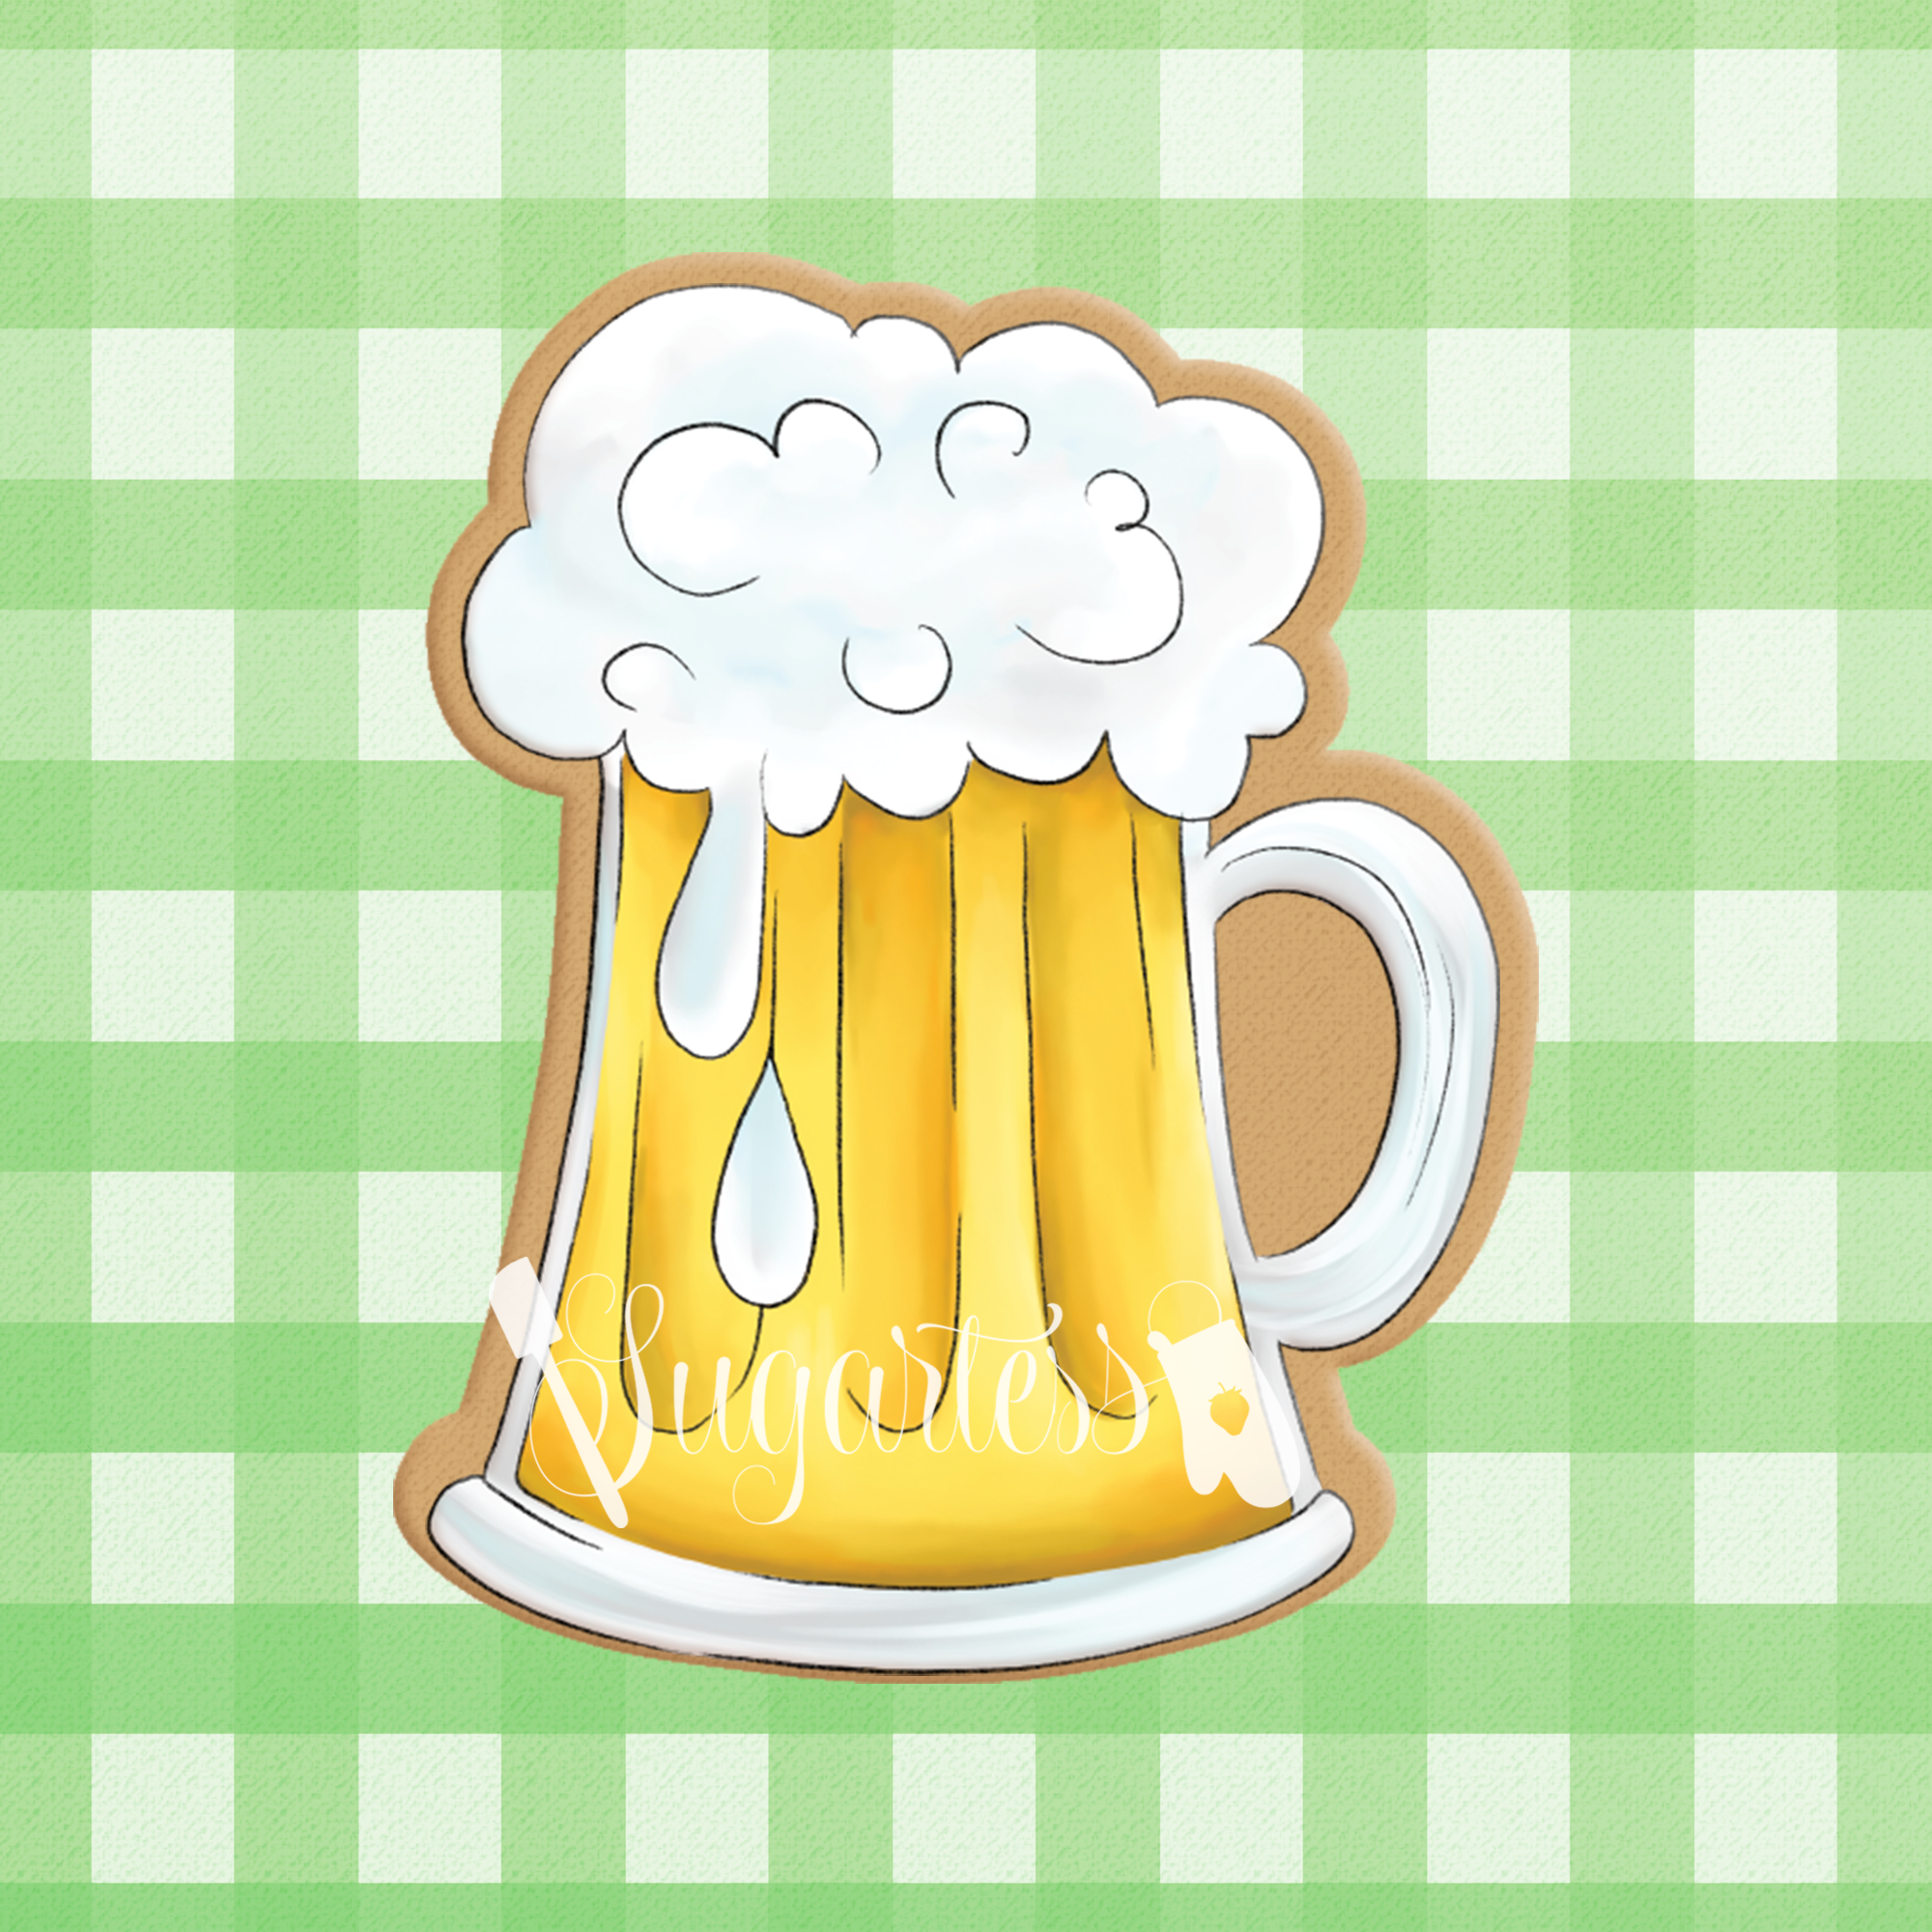 Glass Beer Mug Cookie Cutter Shopify Sugartess Cutters